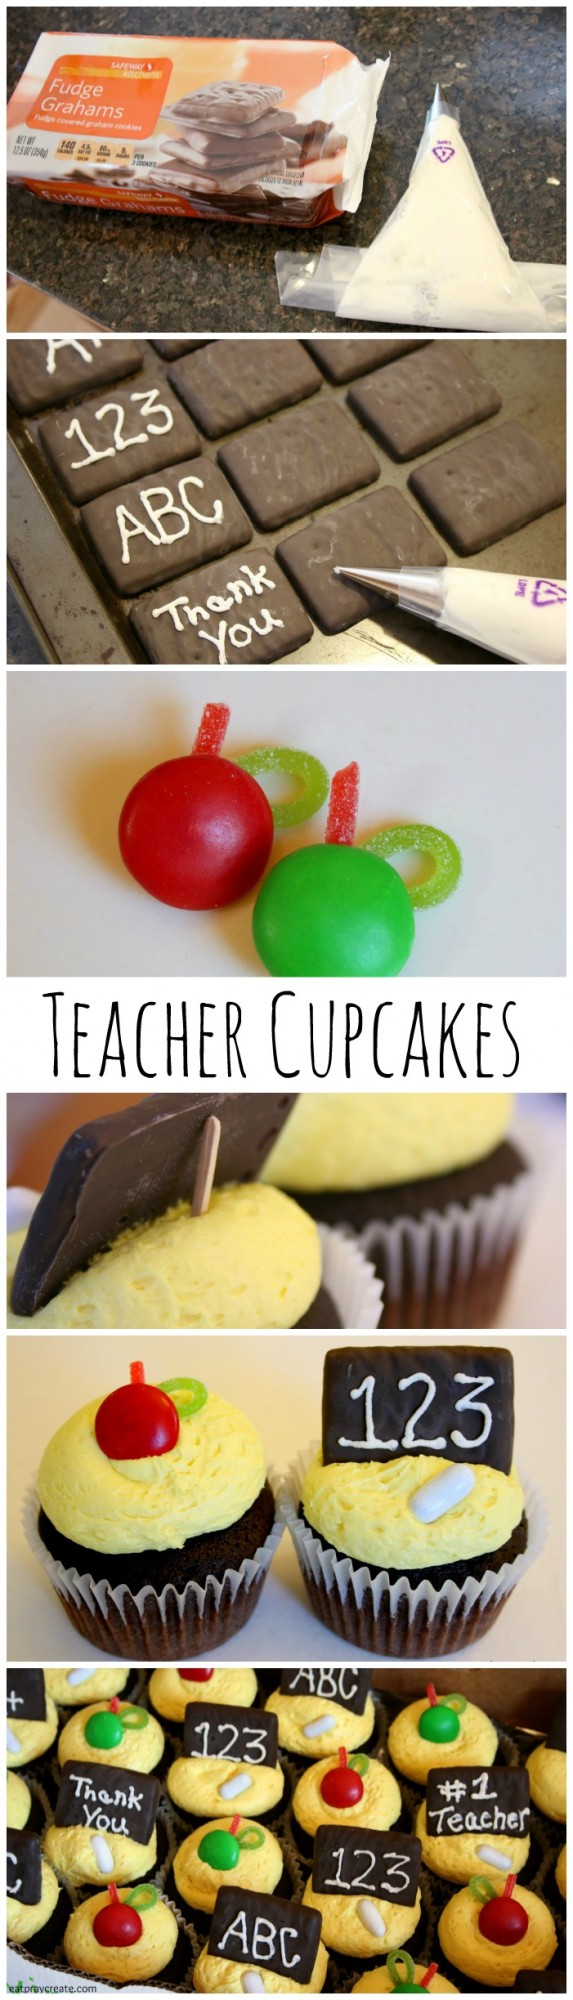 Teacher cupcakes pin